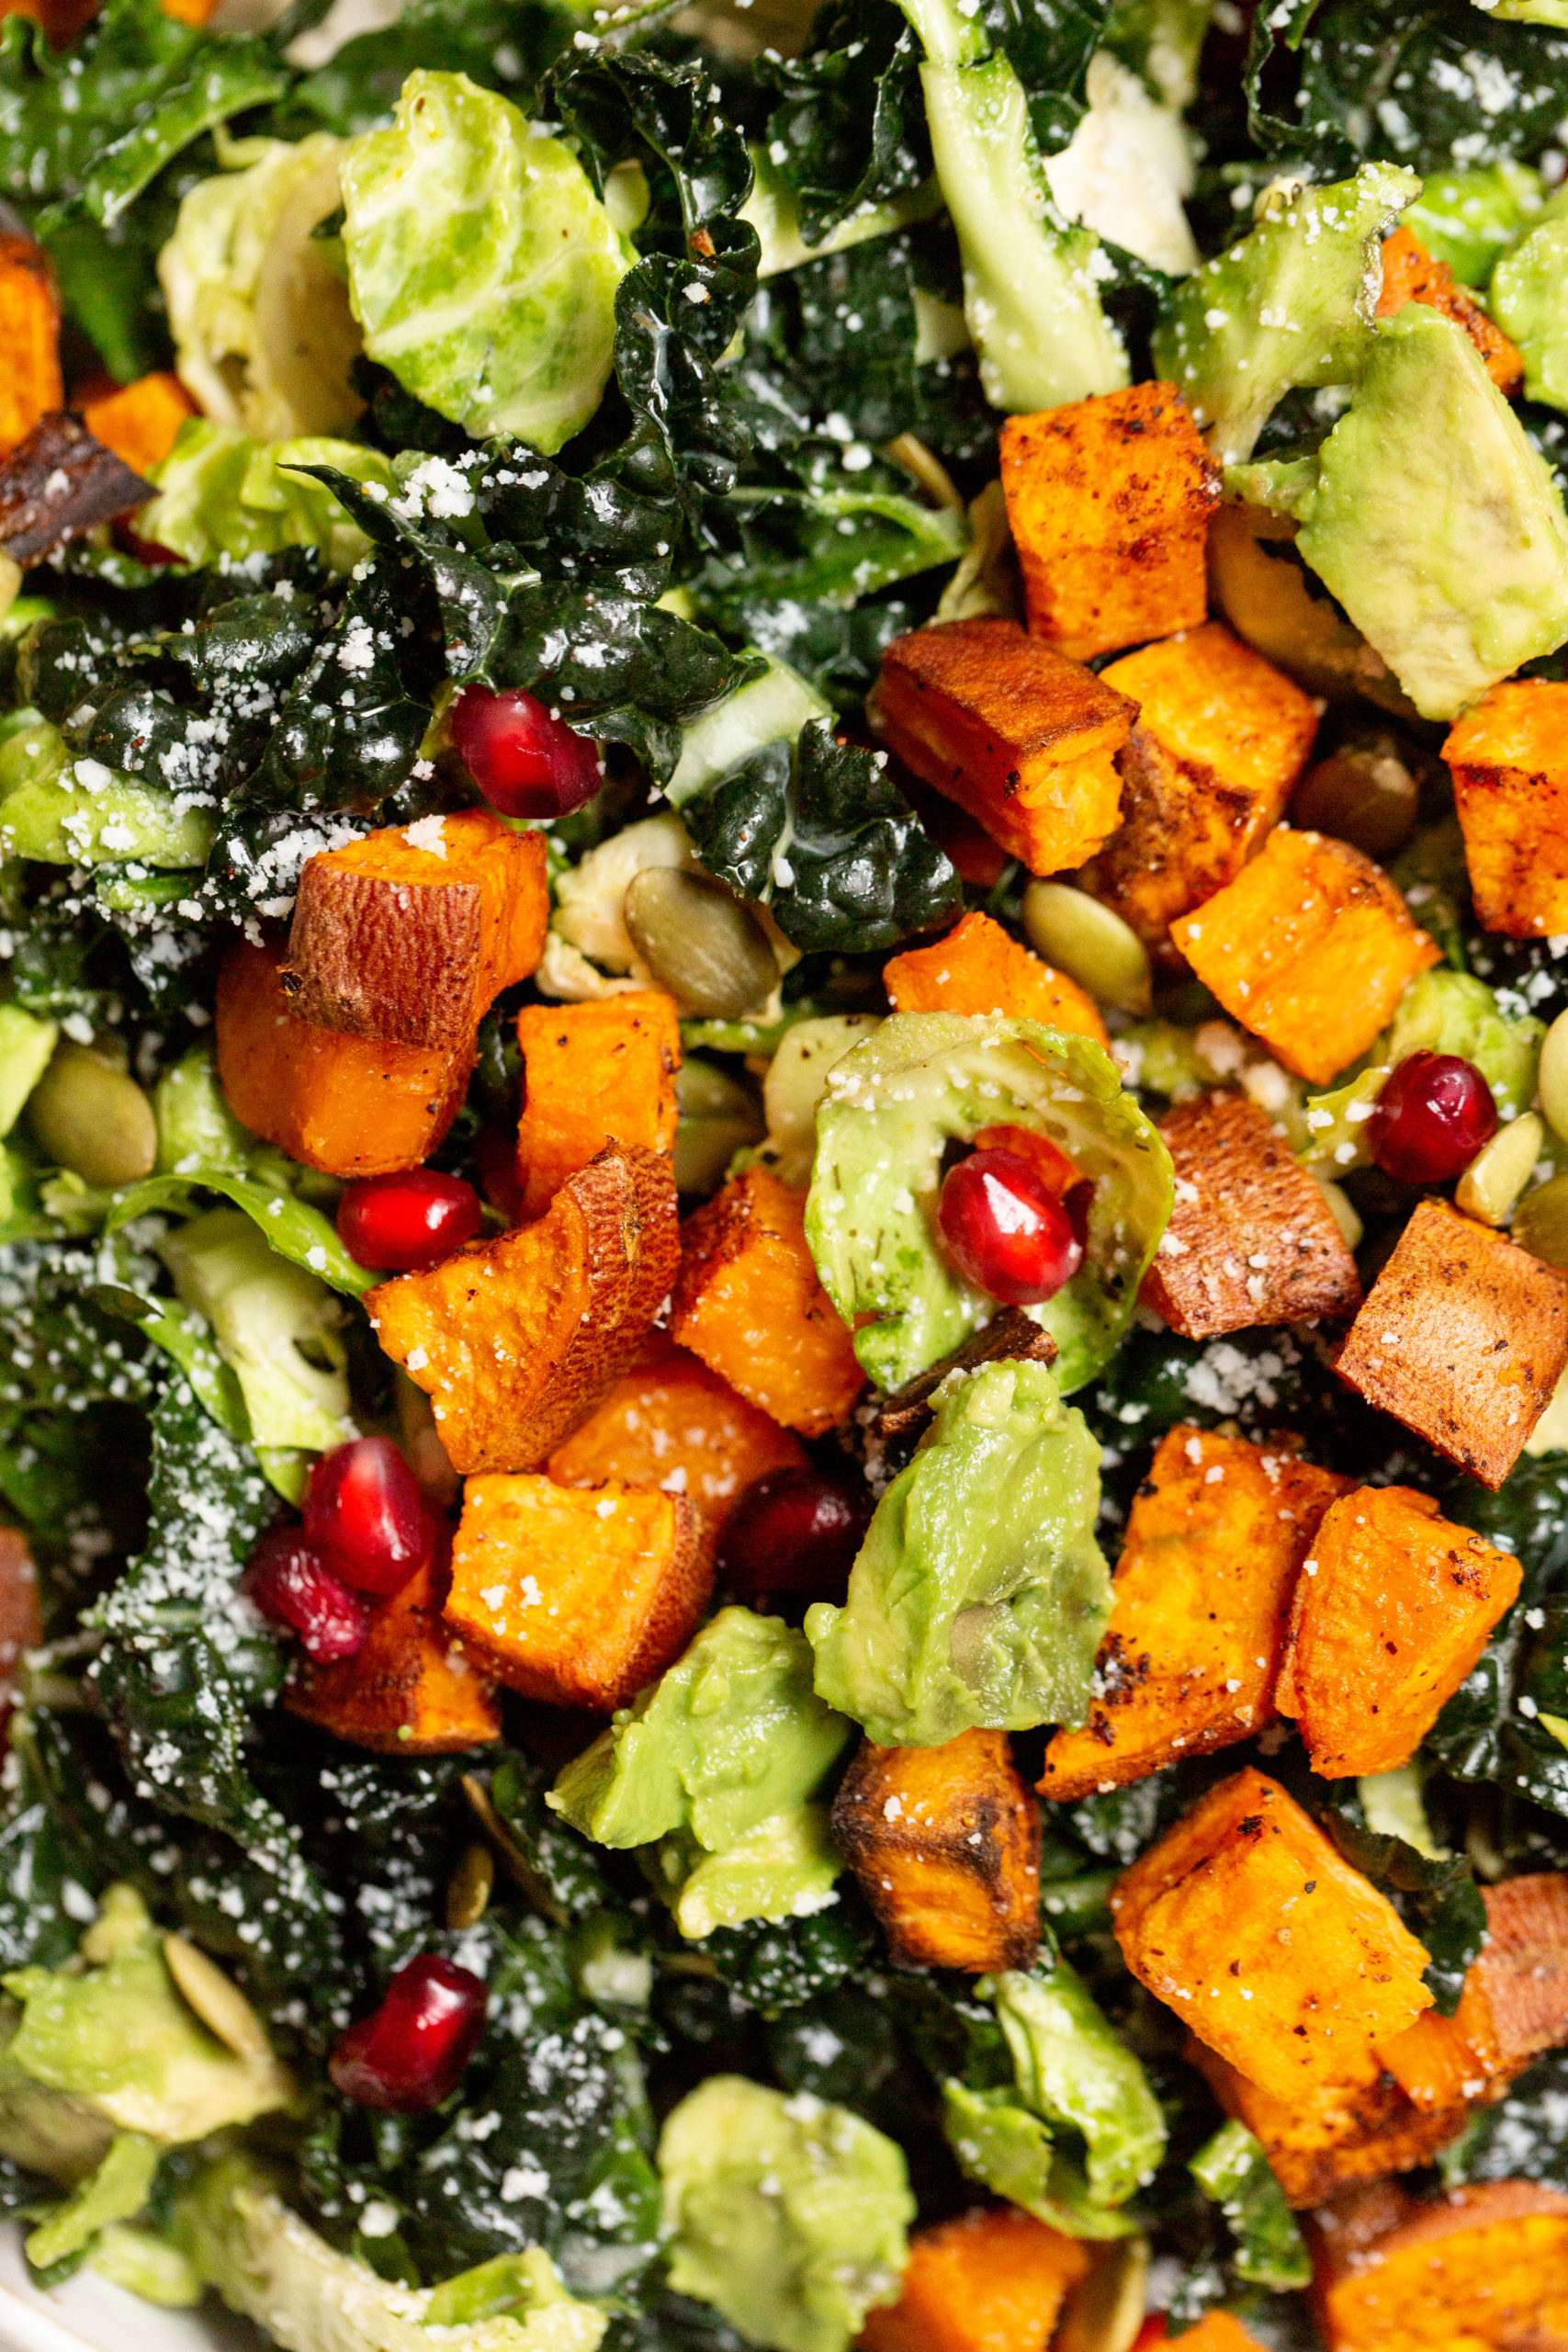 Kale, Brussels Sprouts and Roasted Chili Sweet Potato Salad